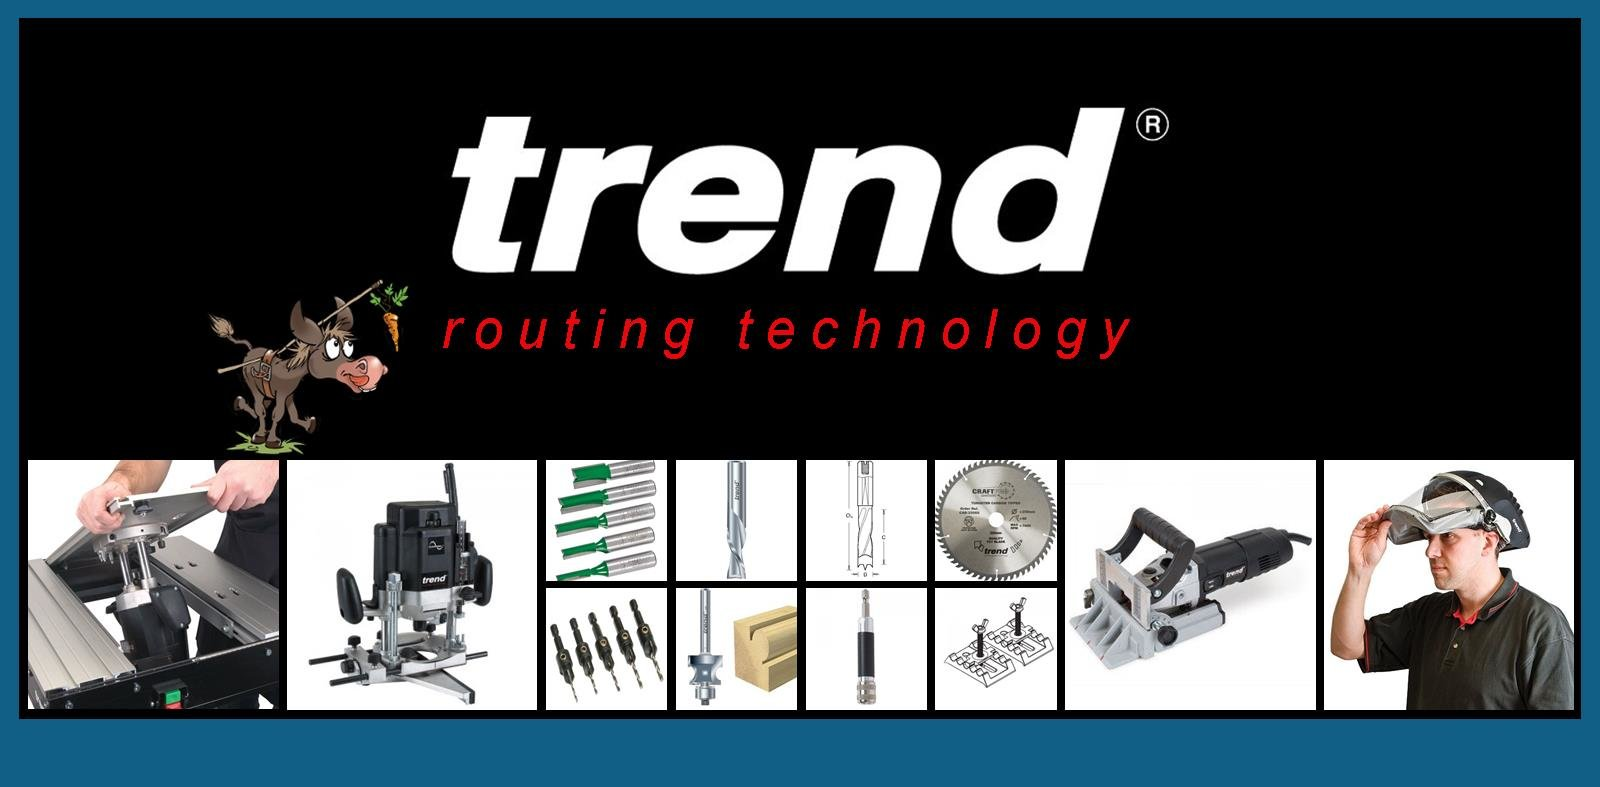 Trend Power Tools, Routers, Router Cutters, Hand tools, Jigs and Accessories